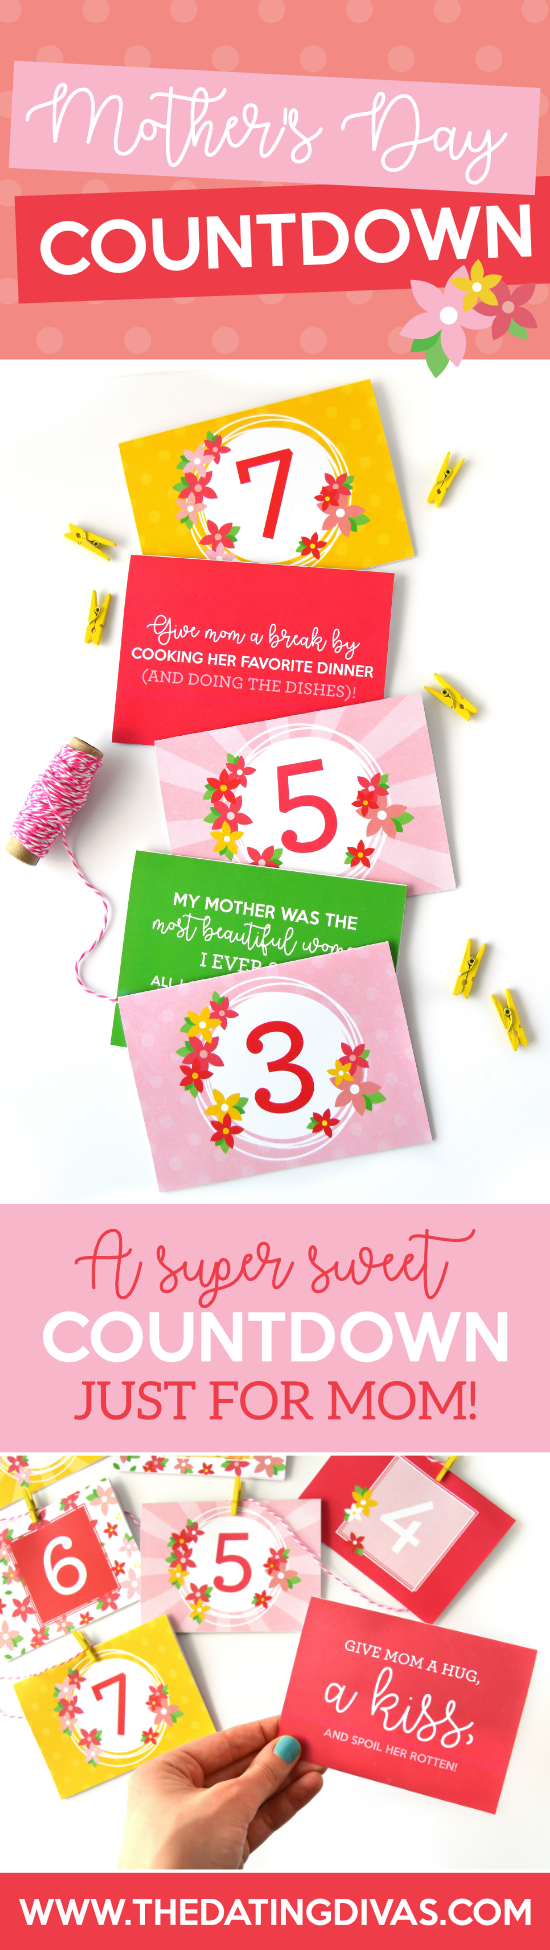 Give mom the PERFECT gift this Mother's Day with your free and easy Mother's Day quotes and service countdown! #mothersdaycountdown #cutemothersdayideas #makemothersdayspecial